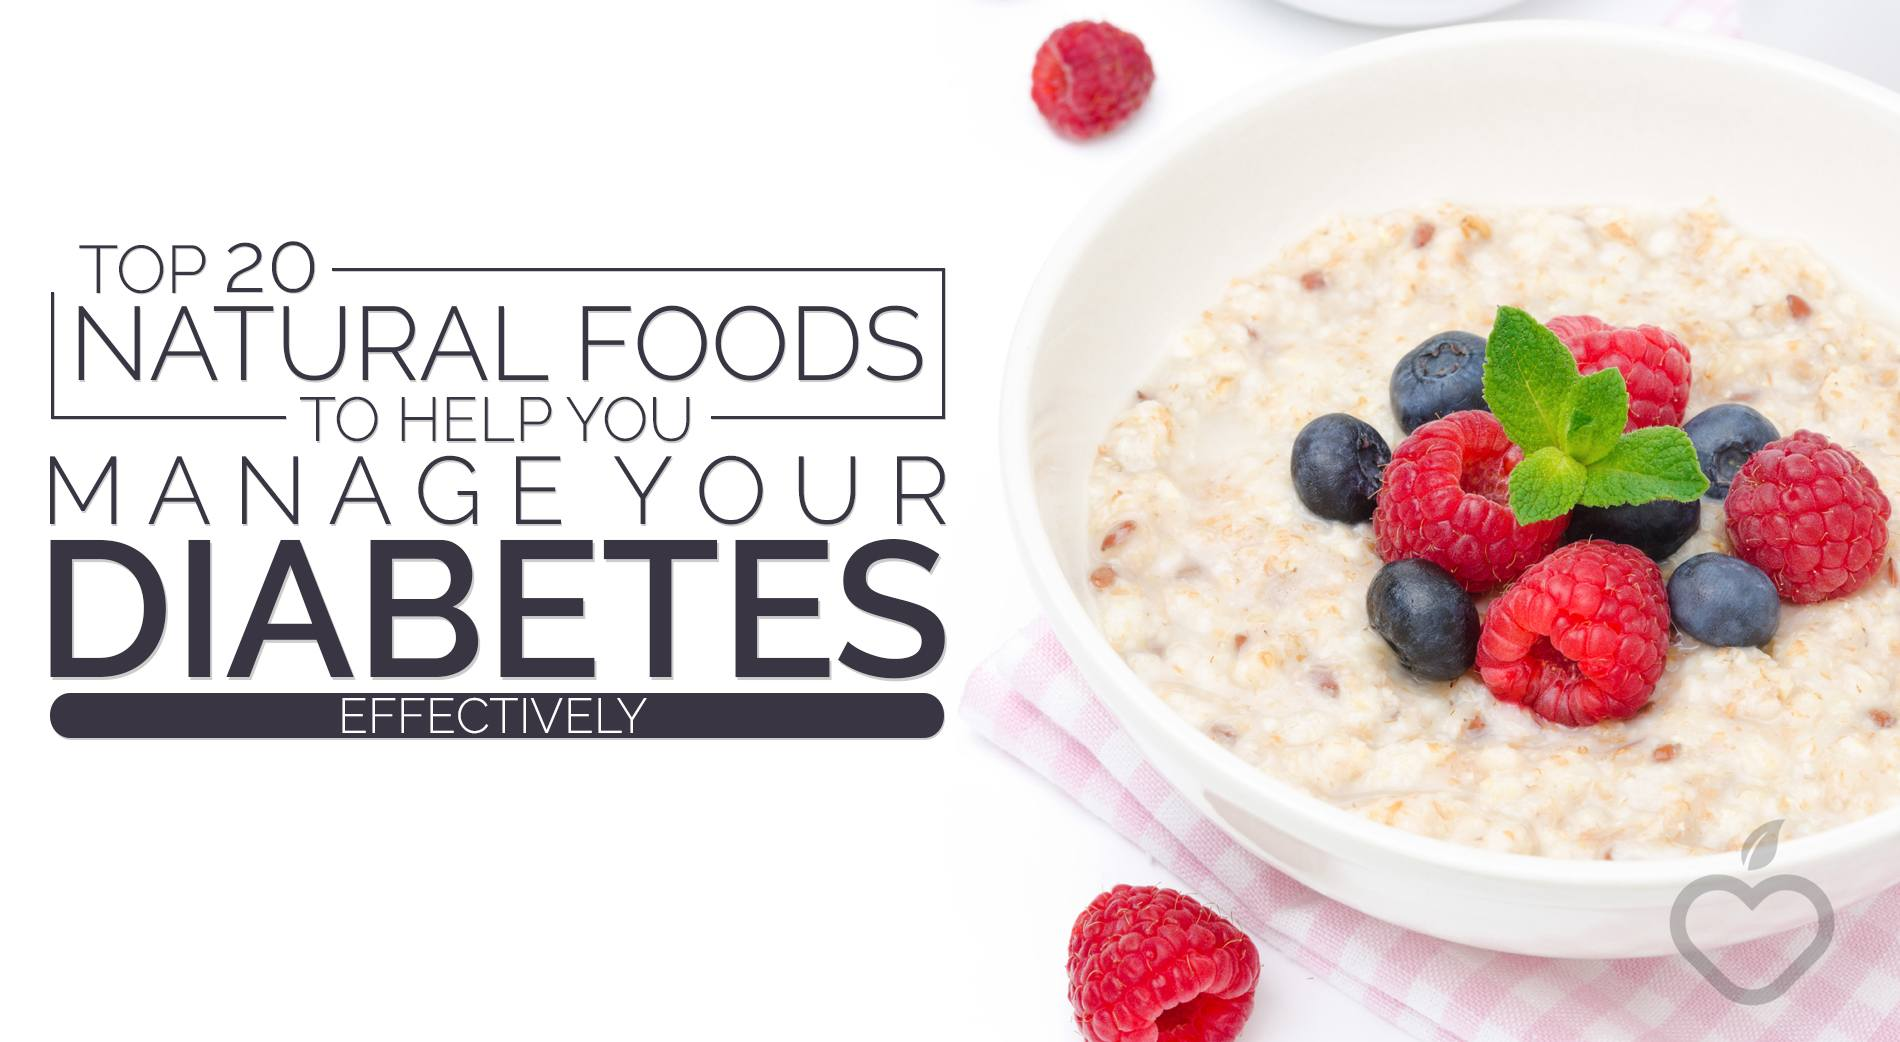 Diabetes Image Design 1 - Top 20 Natural Foods To Help You Manage Your Diabetes Effectively